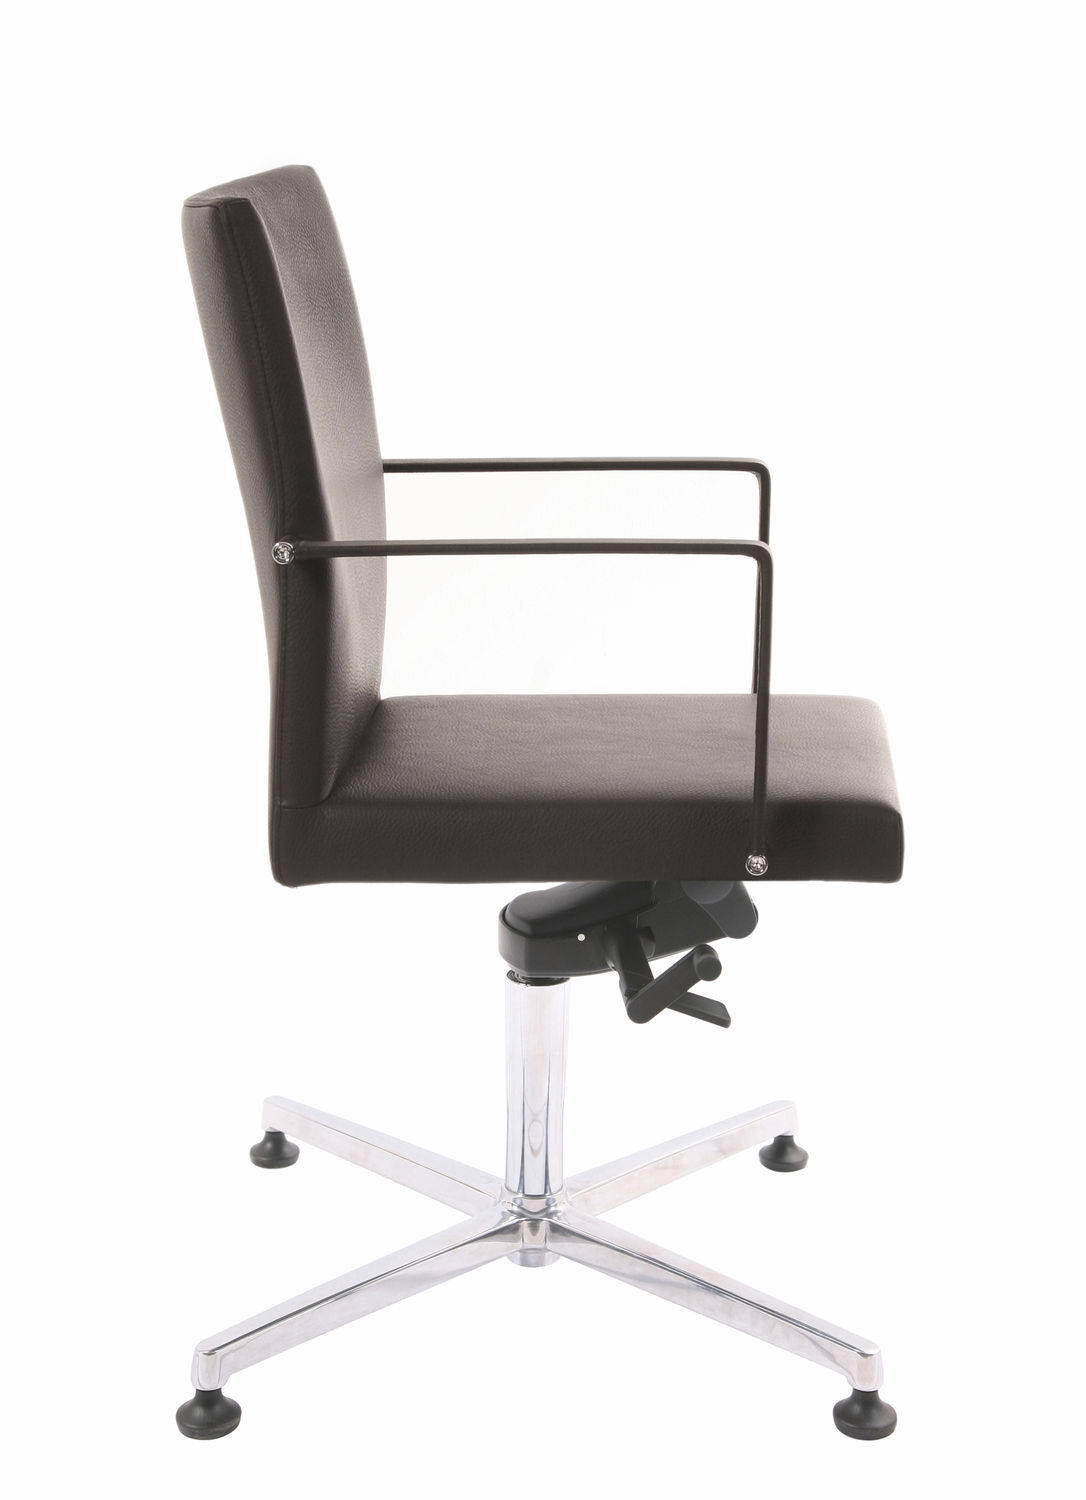 Bürostuhl design rollen  Contemporary office chair / on casters / upholstered / with ...